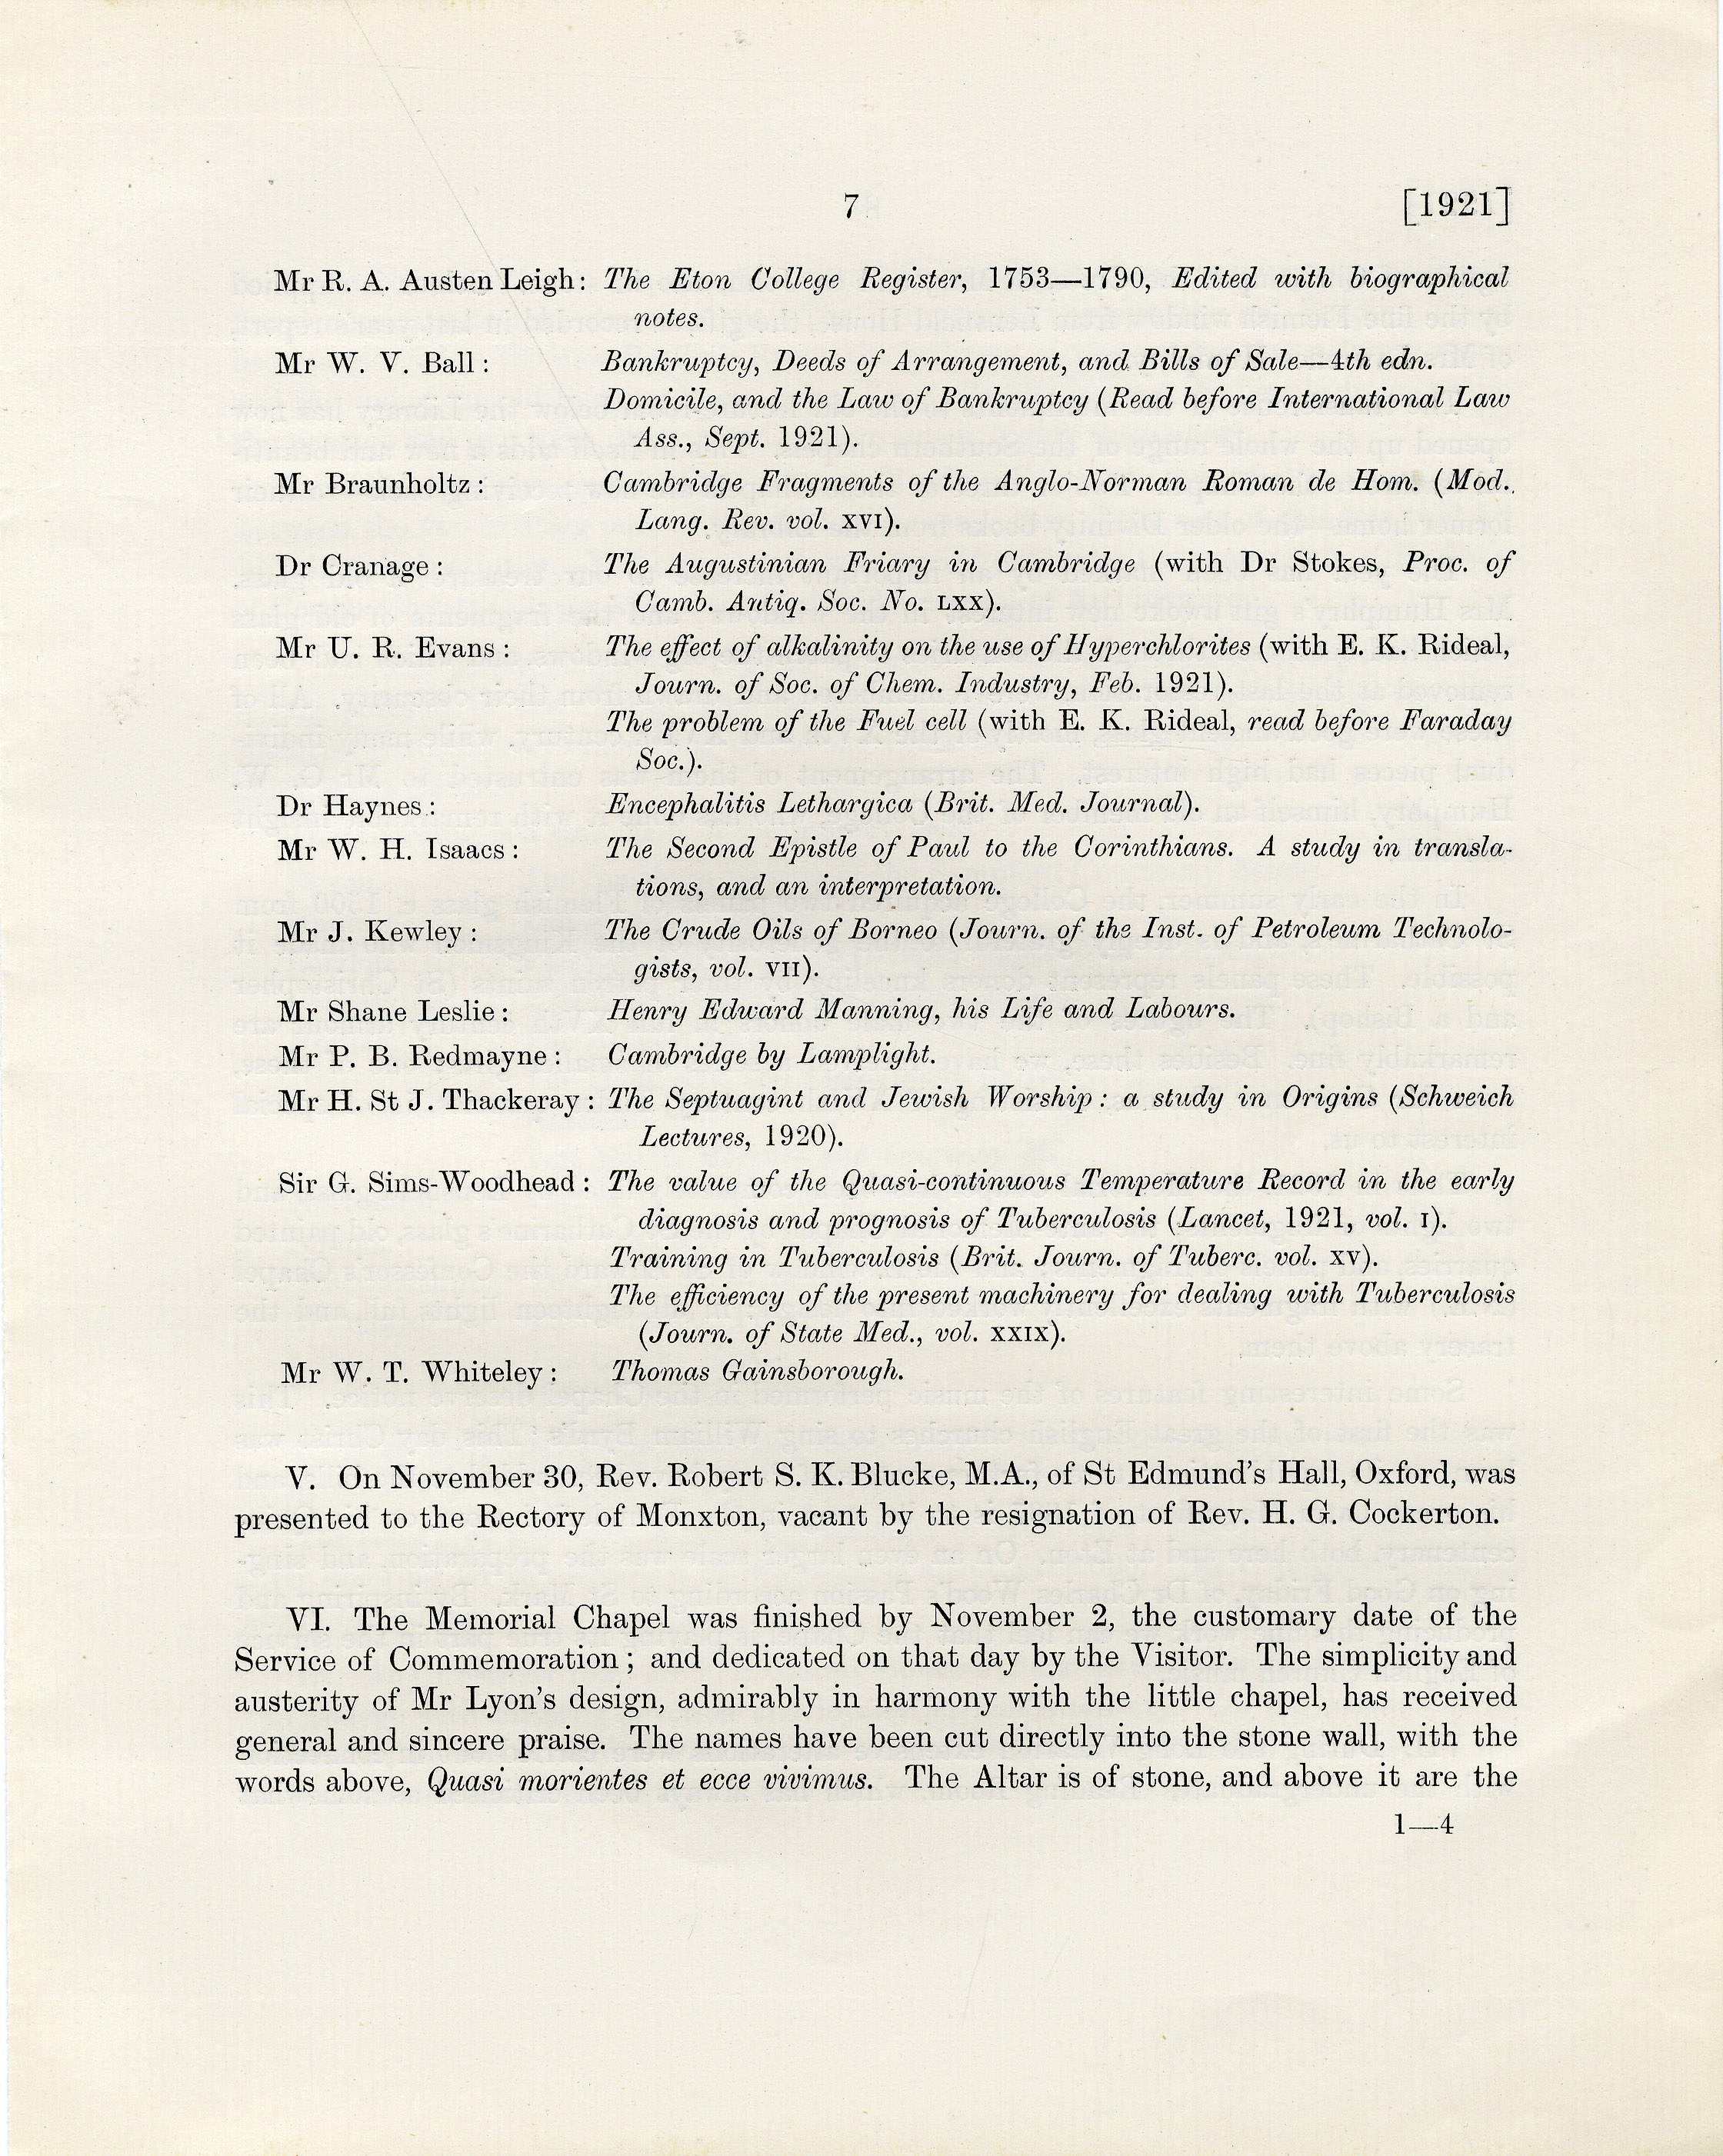 Opening of the Memorial Chapel, Annual Report of 1921 (p.7)